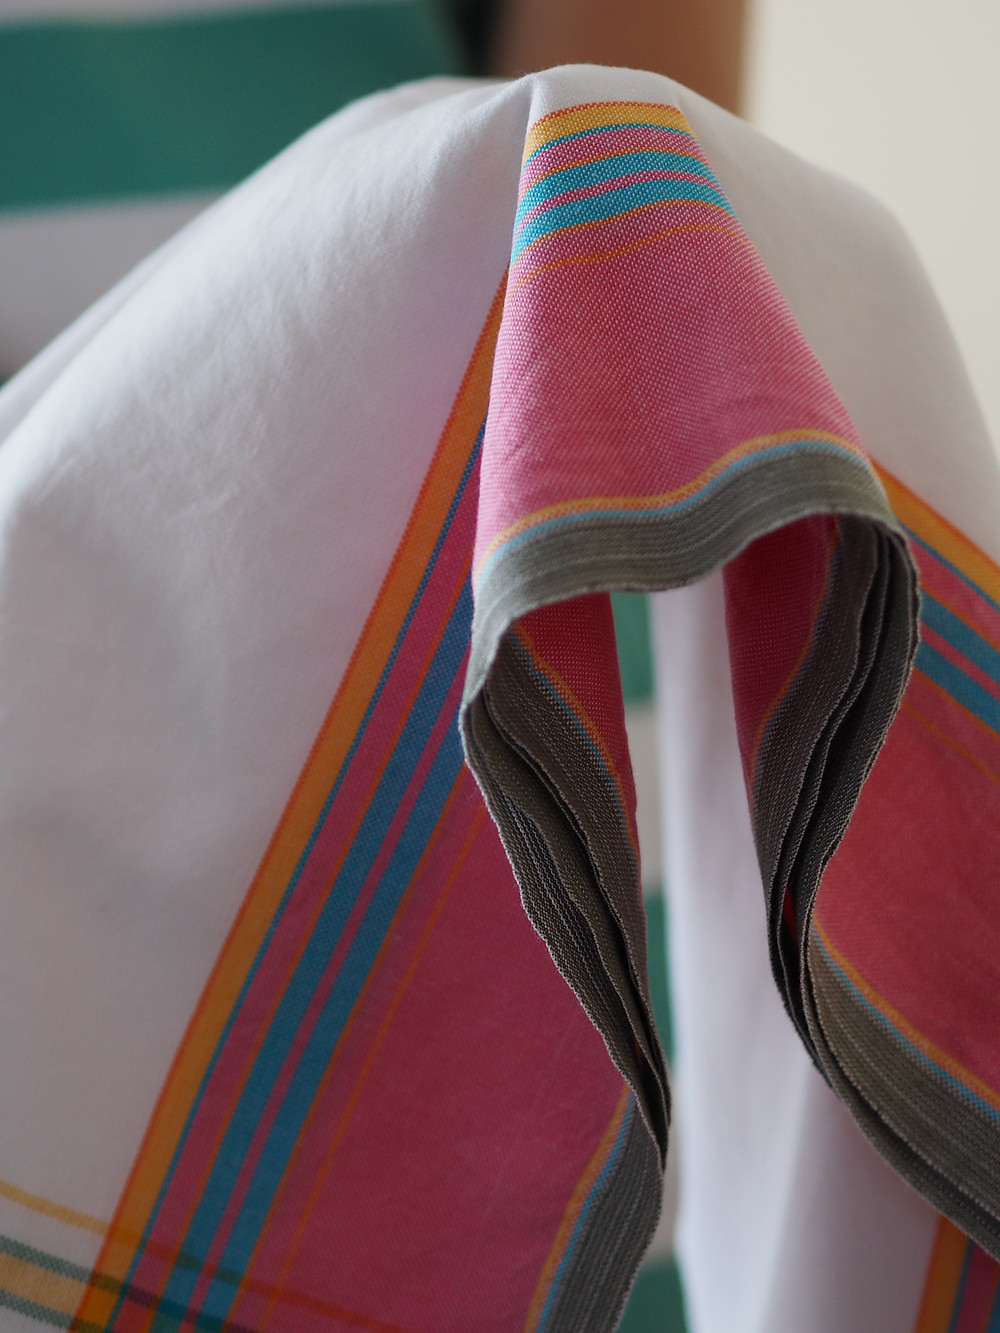 coconut and pink handmade cotton kikoy sarong. Available to buy at Wild Home Online on Etsy.